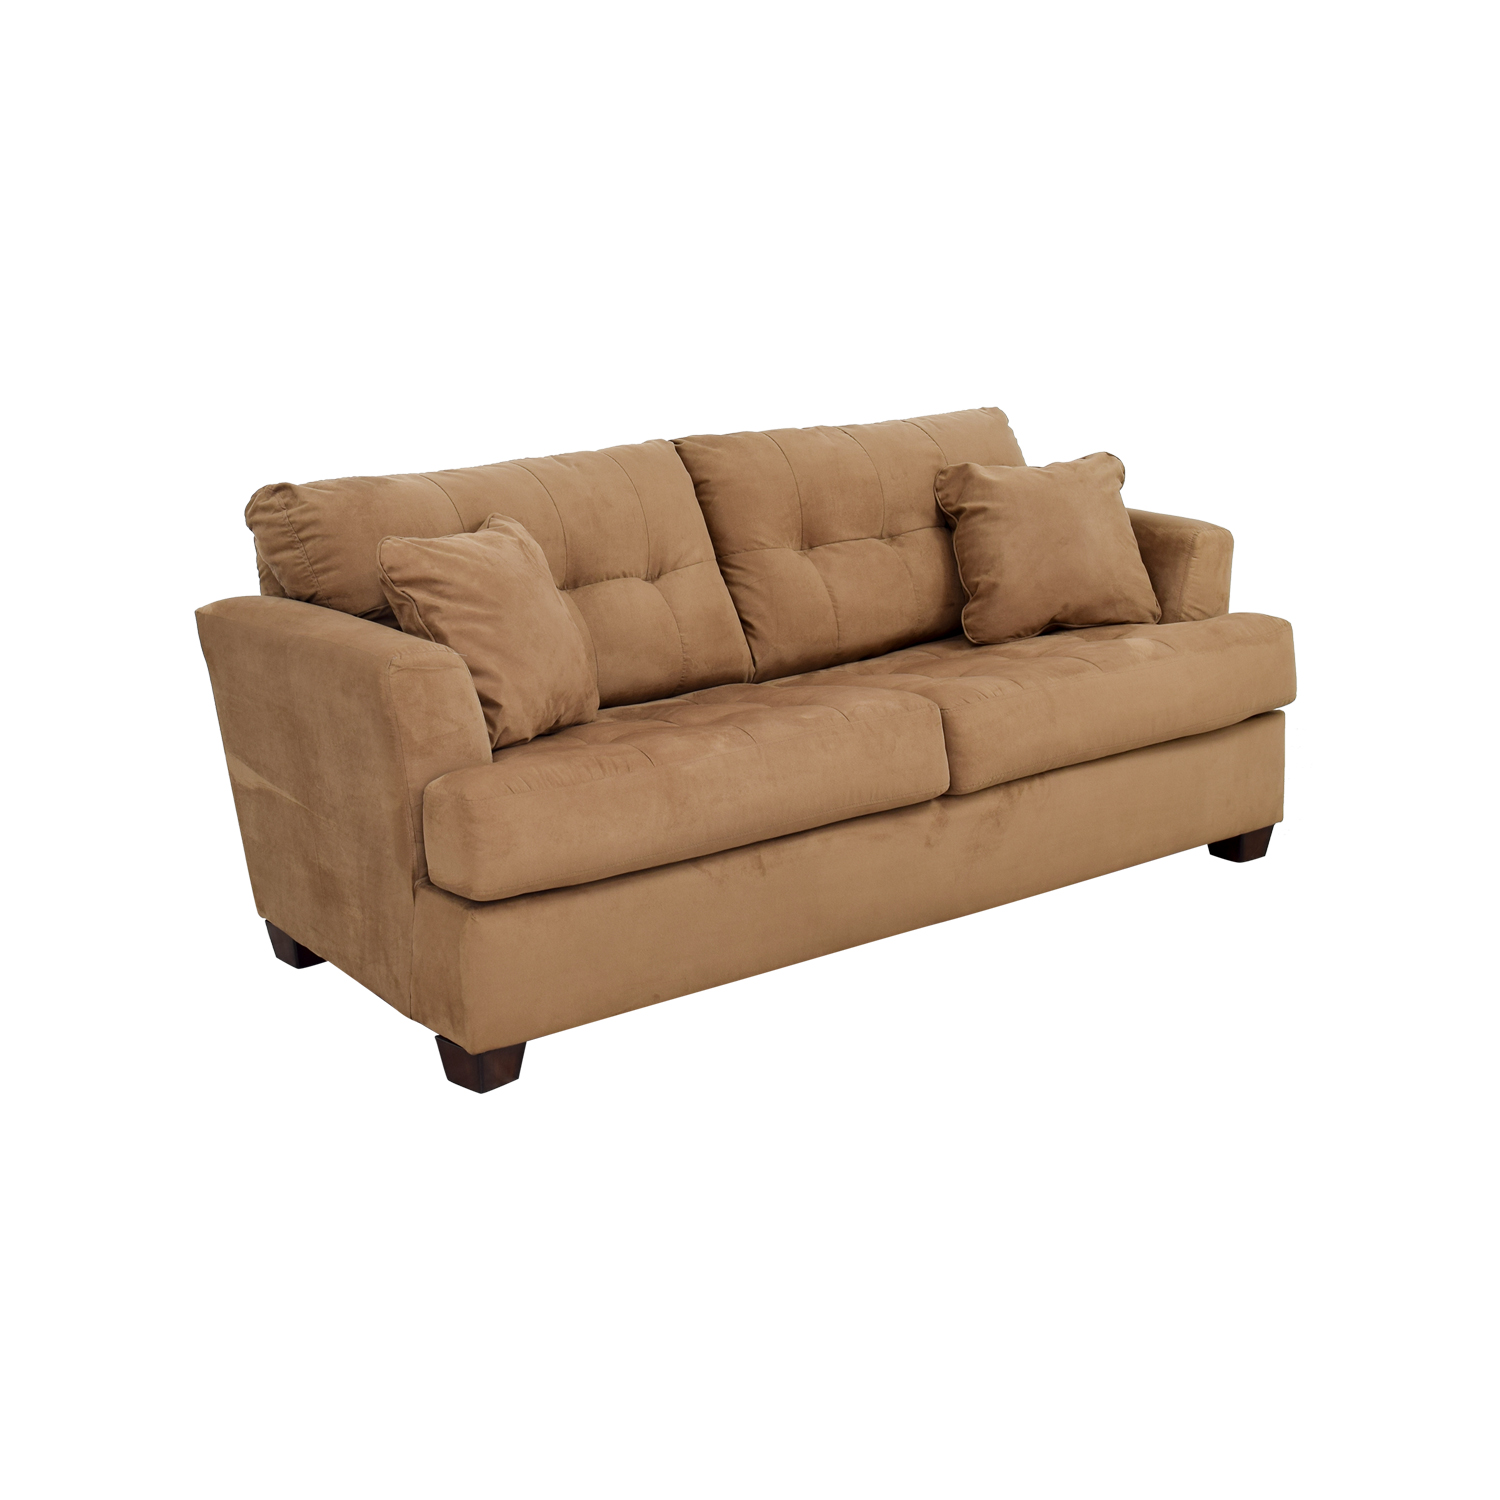 80 Off Ashley Furniture Ashley Furniture Tan Microfiber Convertible Couch Sofas